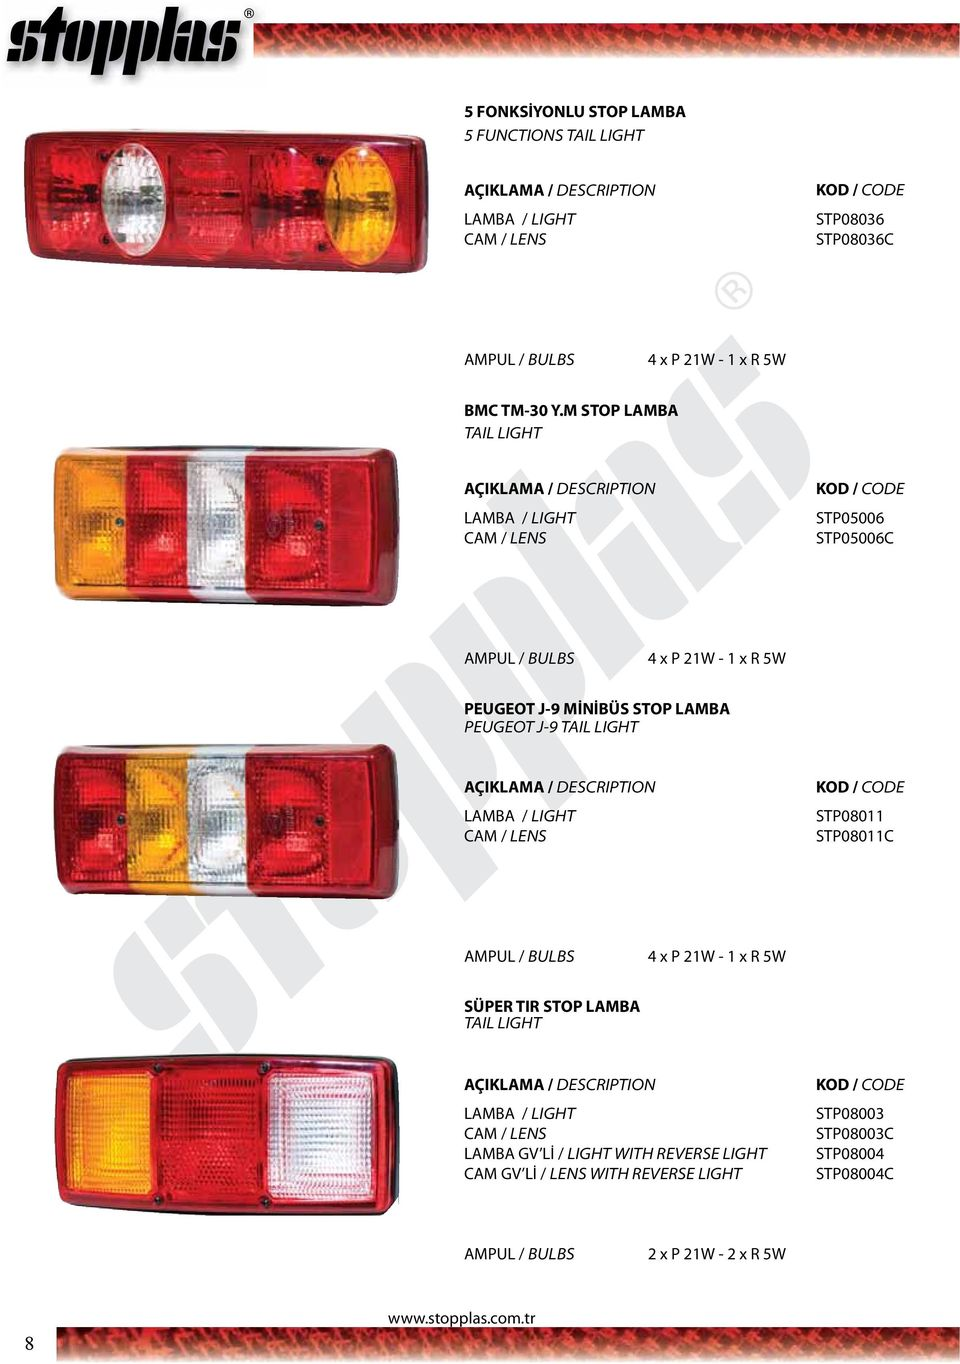 TAIL LIGHT STP08011 STP08011C S 4 x P 21W - 1 x R 5W SÜPER TIR STOP LAMBA TAIL LIGHT LAMBA GV Lİ / LIGHT